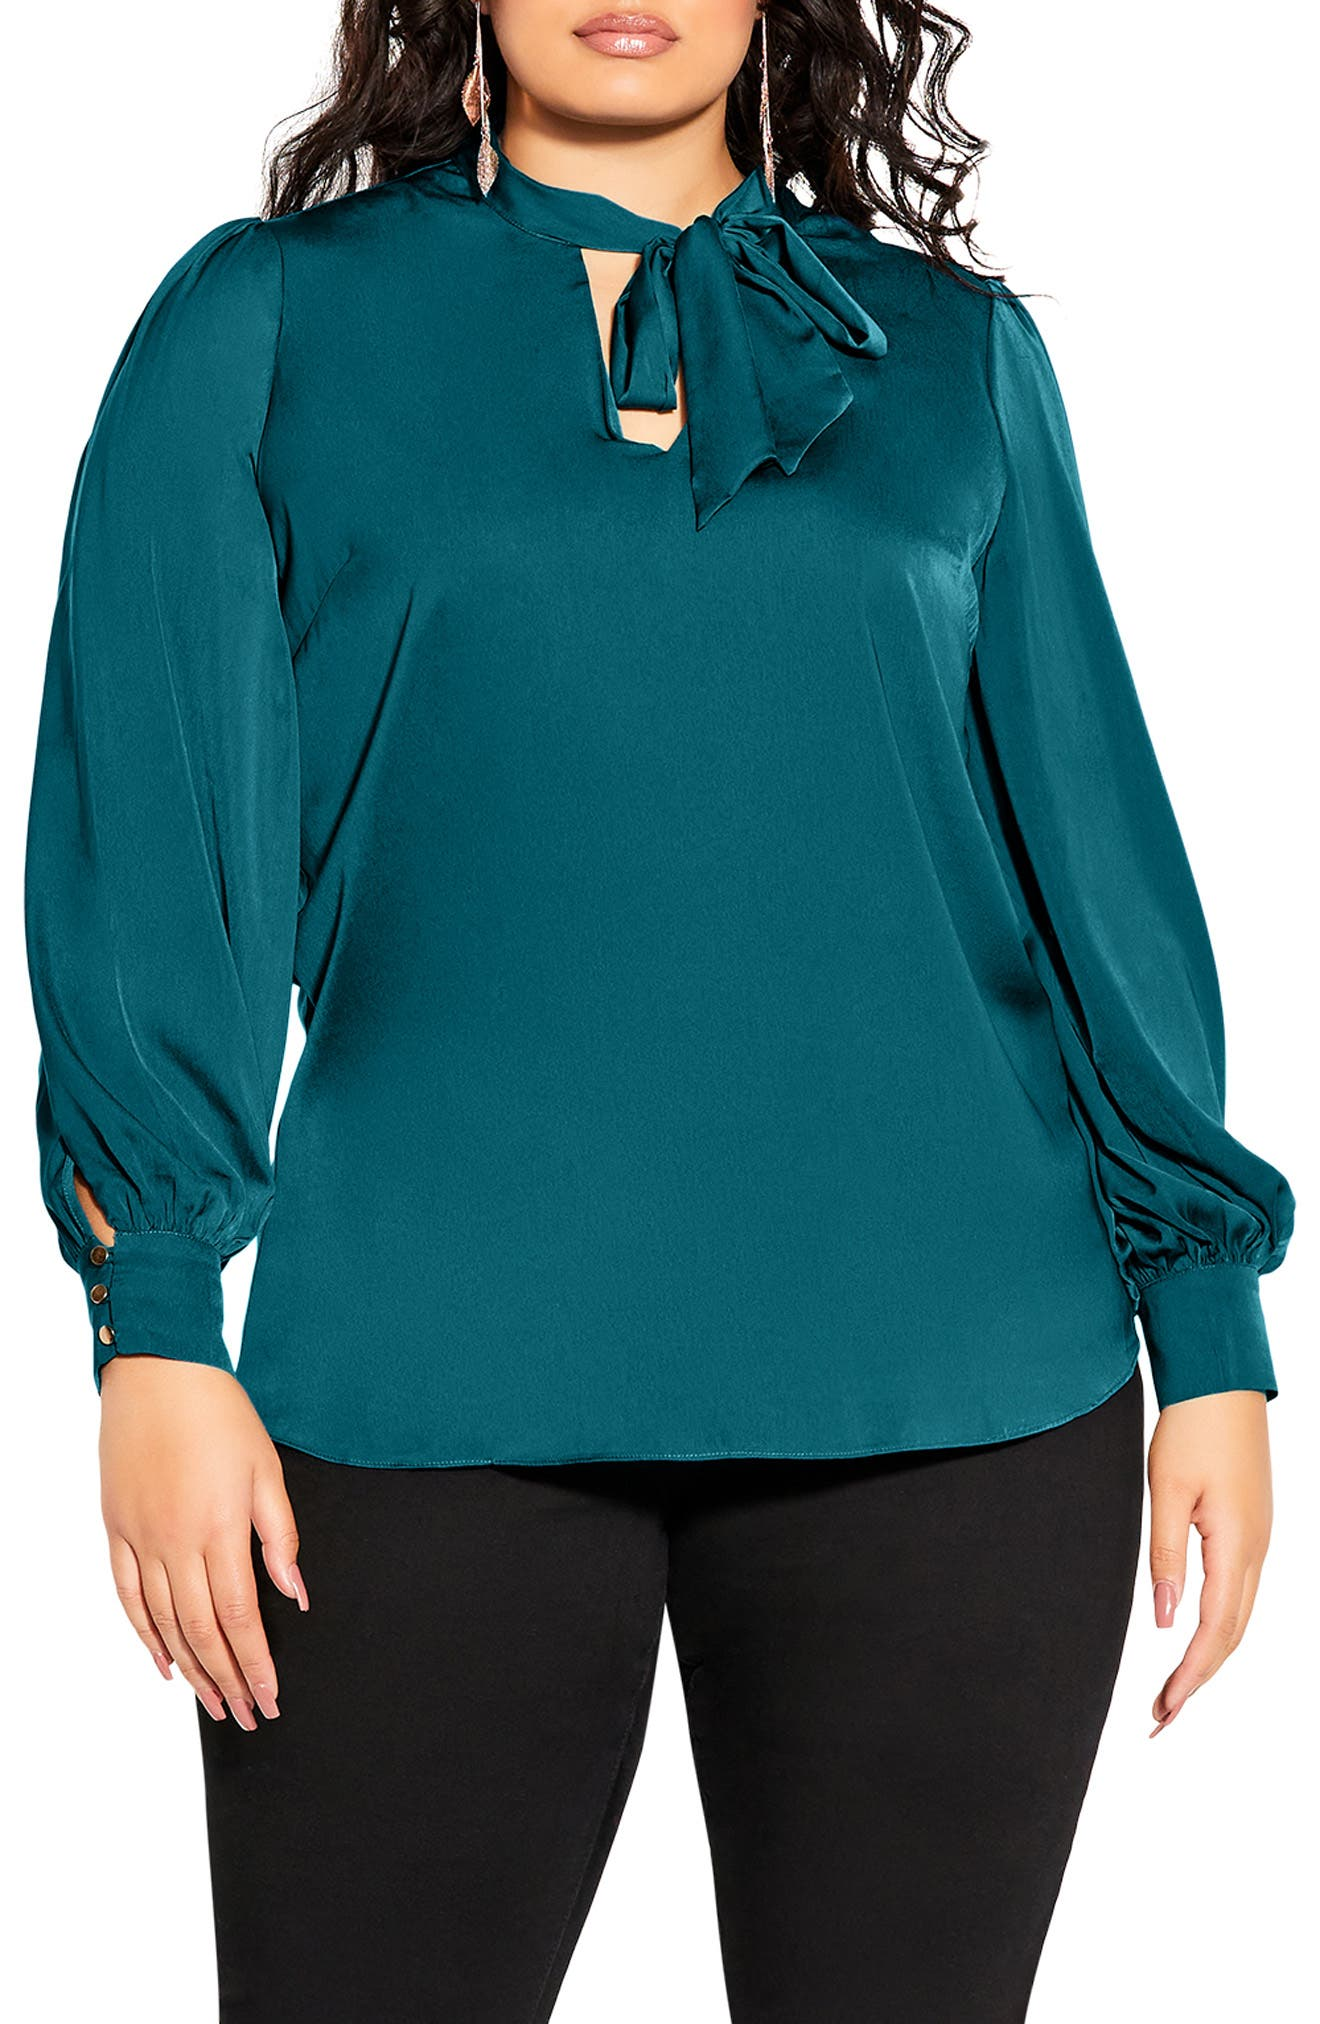 In Awe Tie Neck Blouse